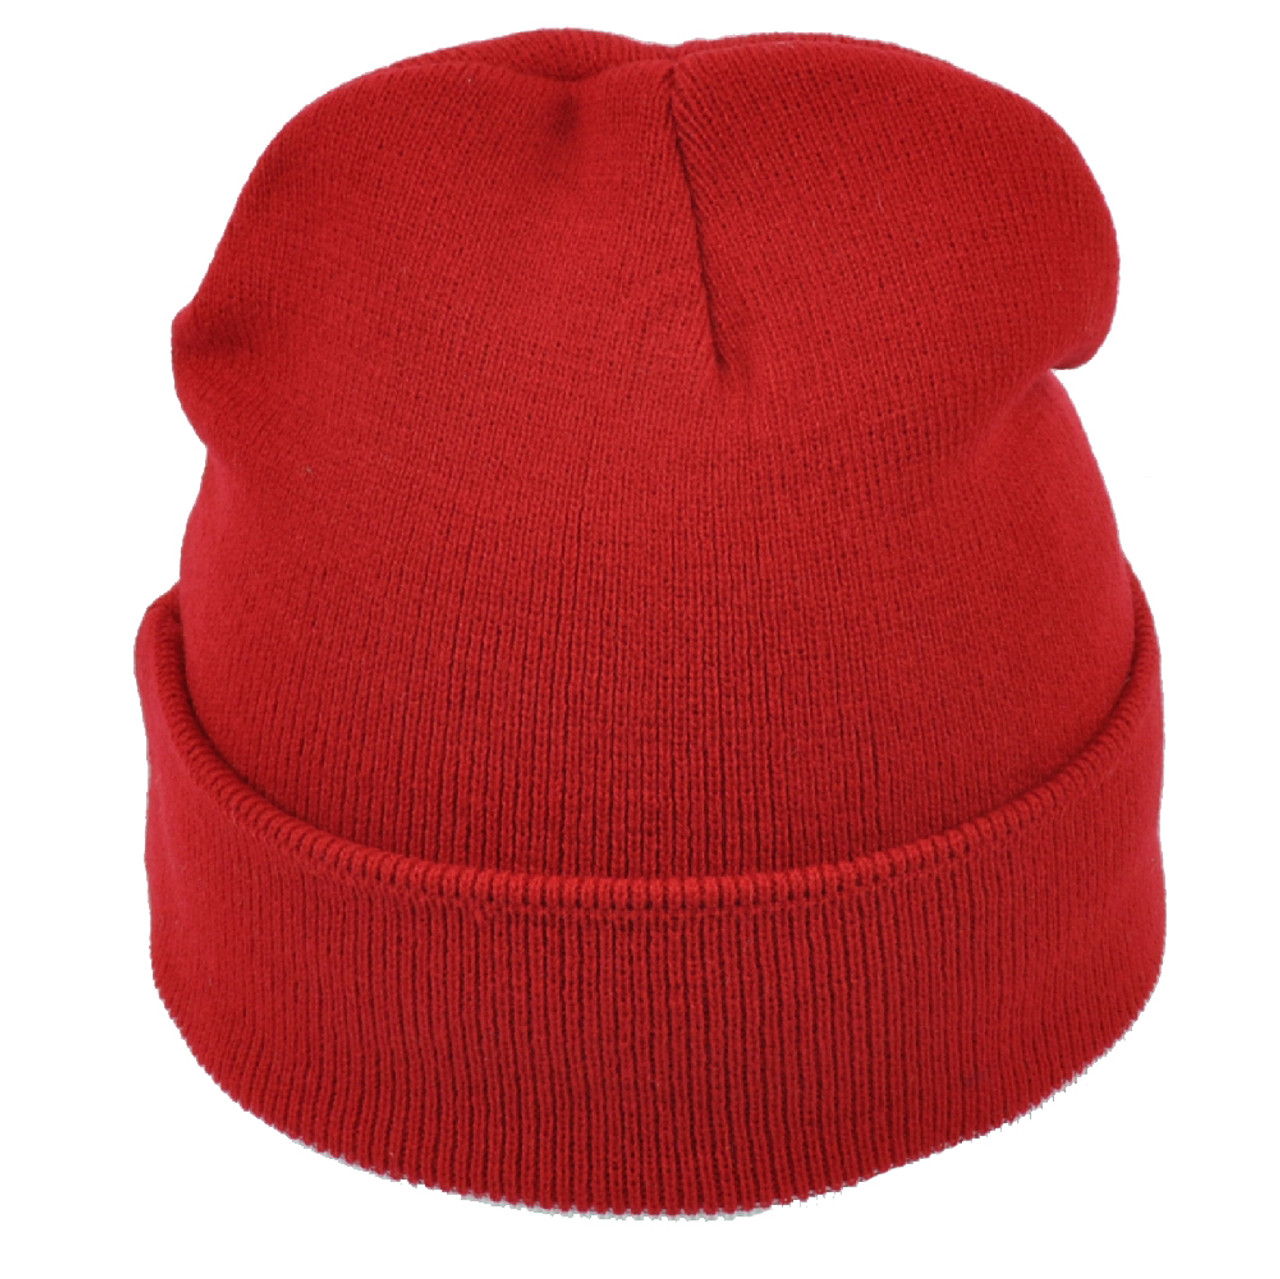 new arrive authorized site 50% off NCAA Utah Utes Cuffed Knit Beanie Red White Hat Toque 2 Tone ...